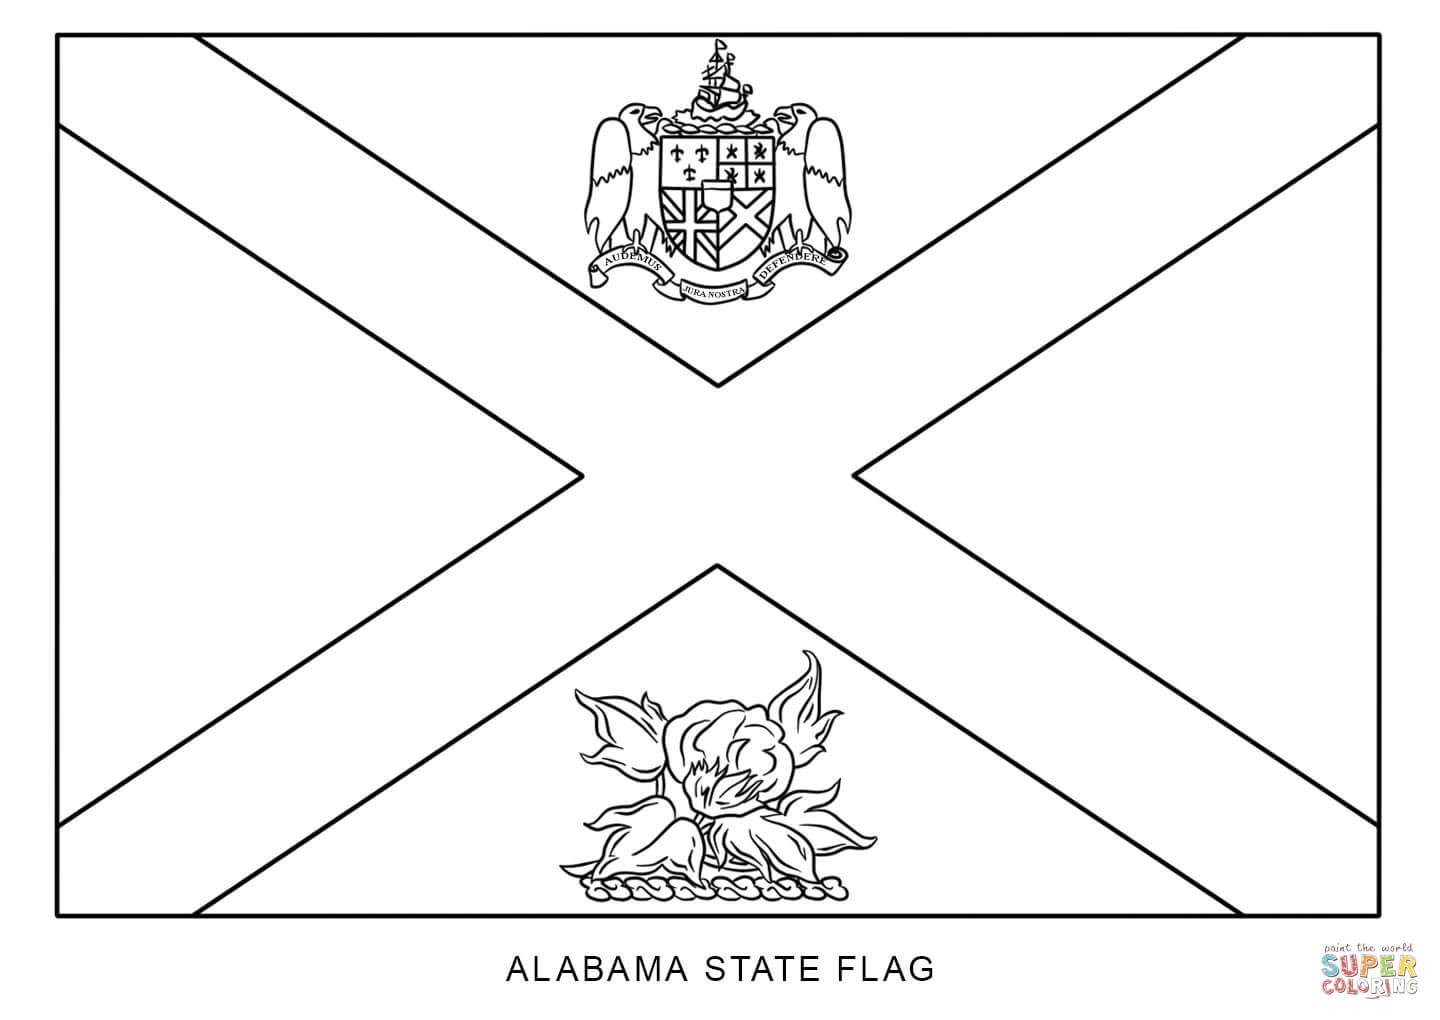 new jersey state seal coloring page new jersey state flower coloring page free printable state page seal new jersey coloring